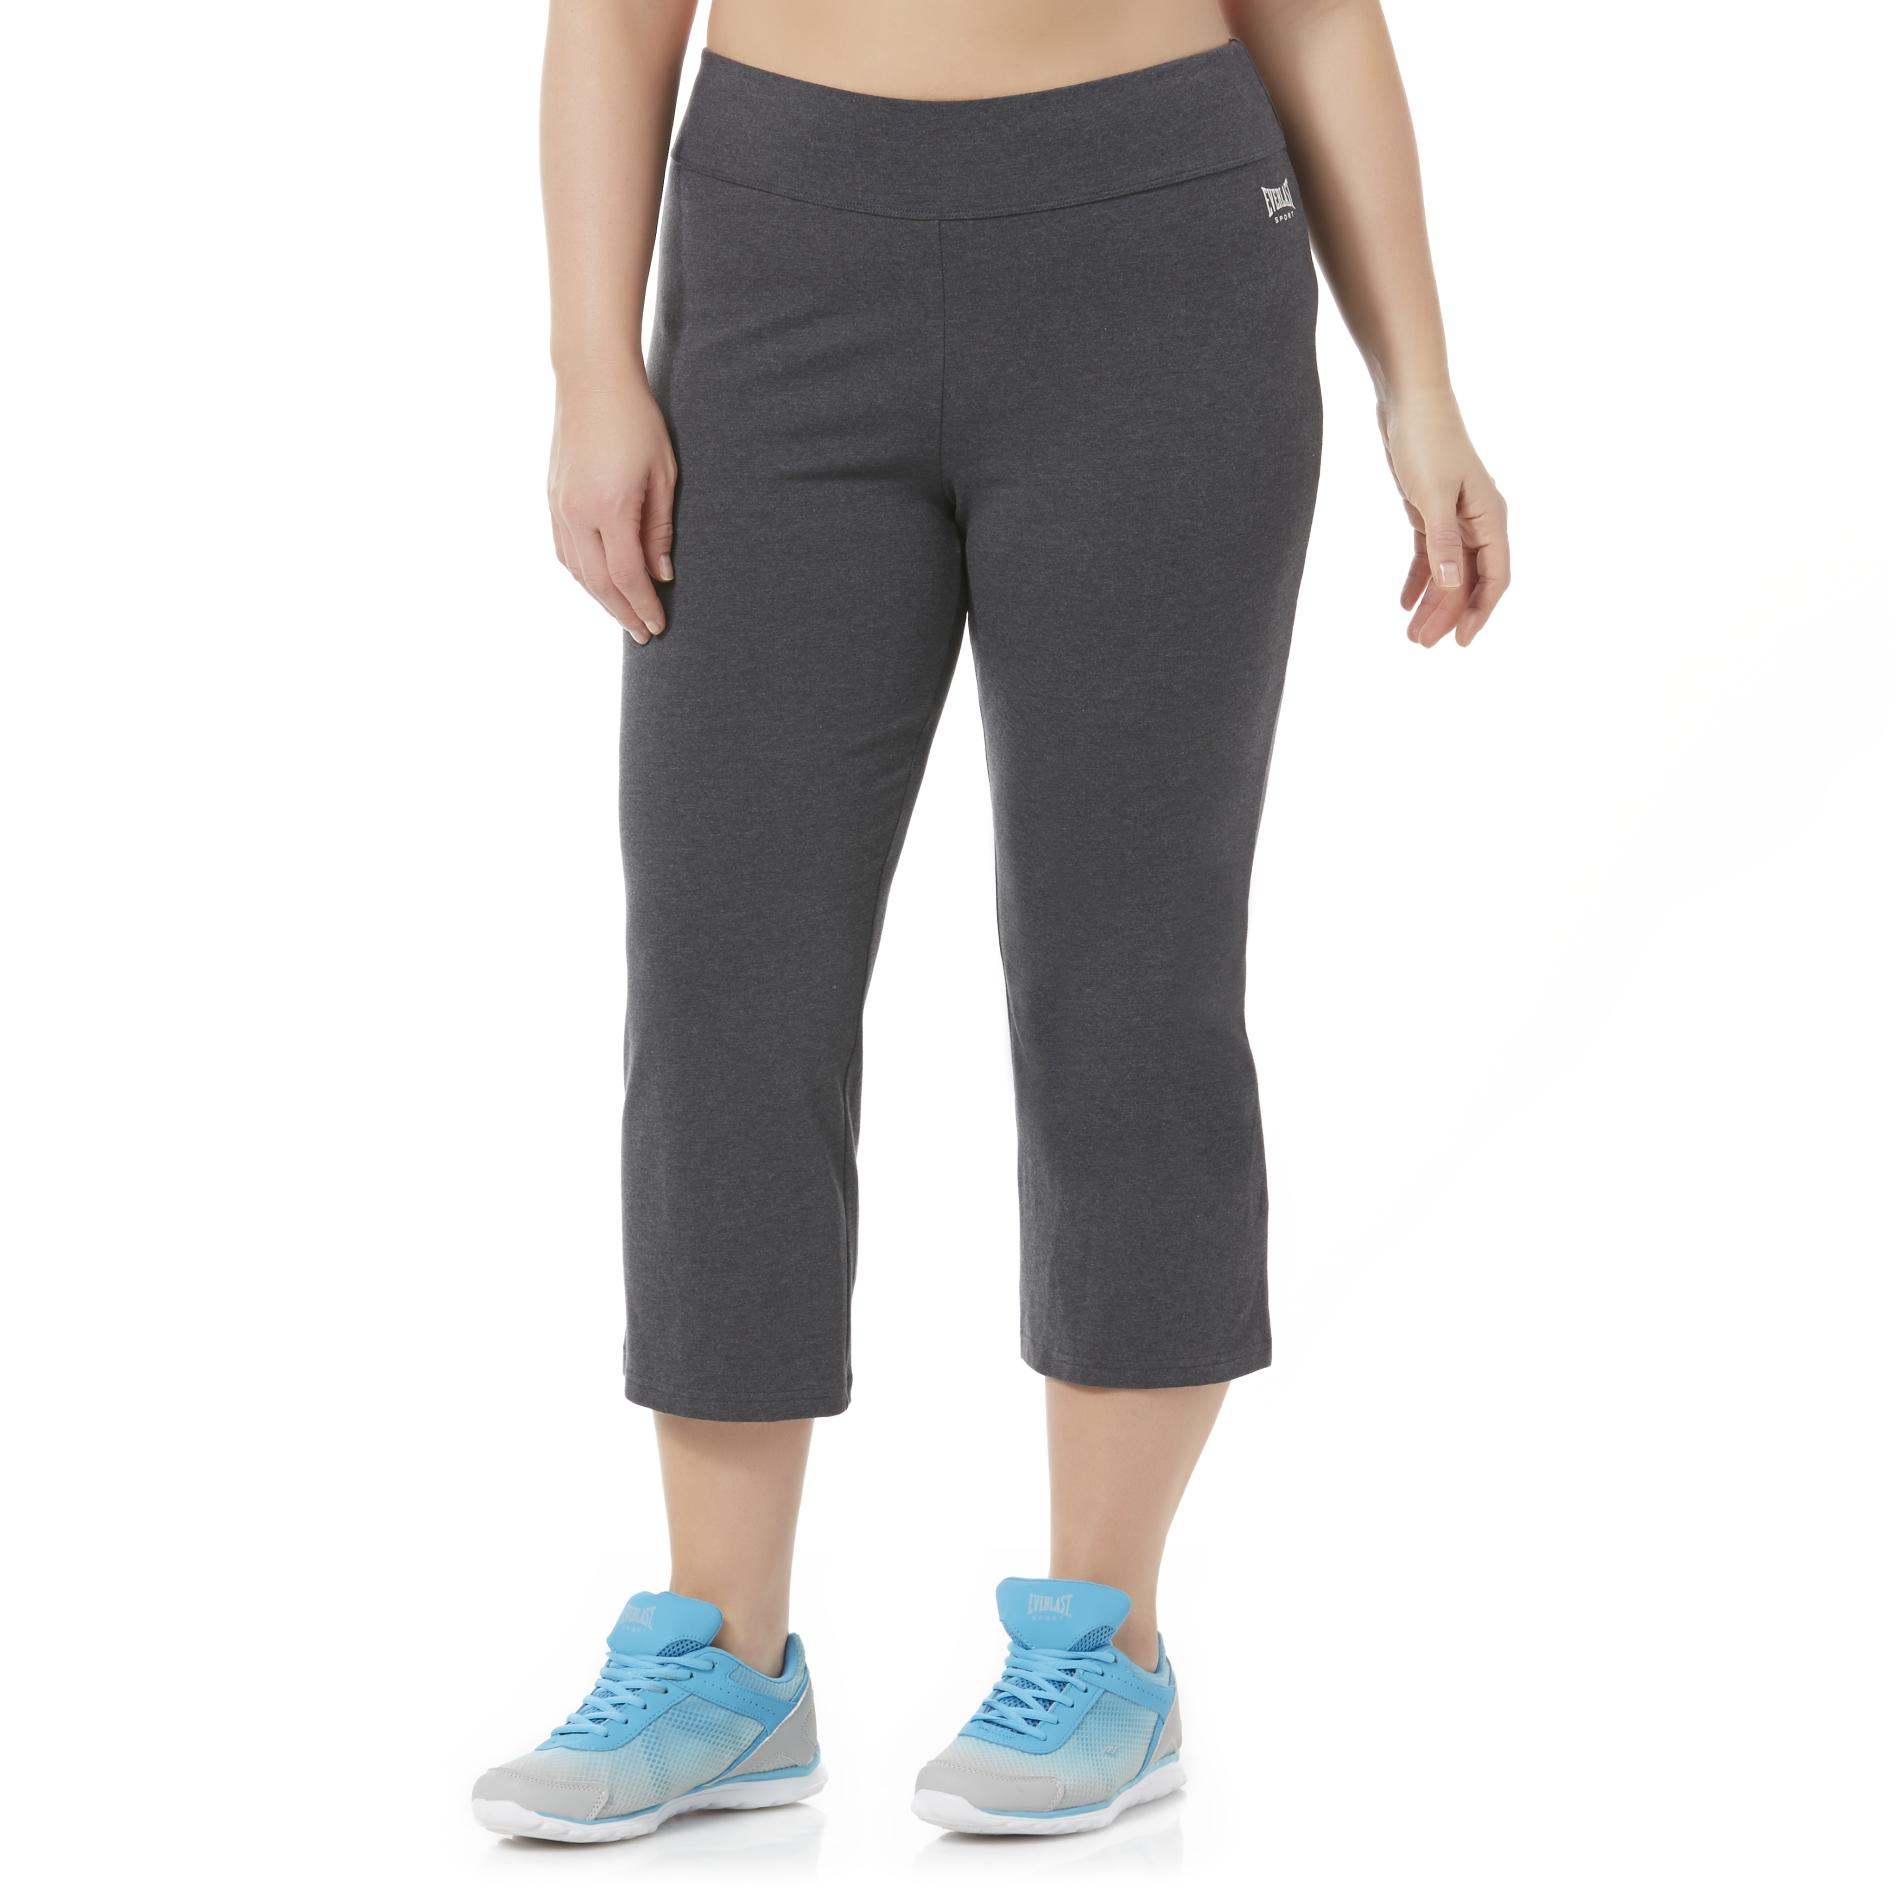 Everlast Sport Women' Capri Athletic Pants